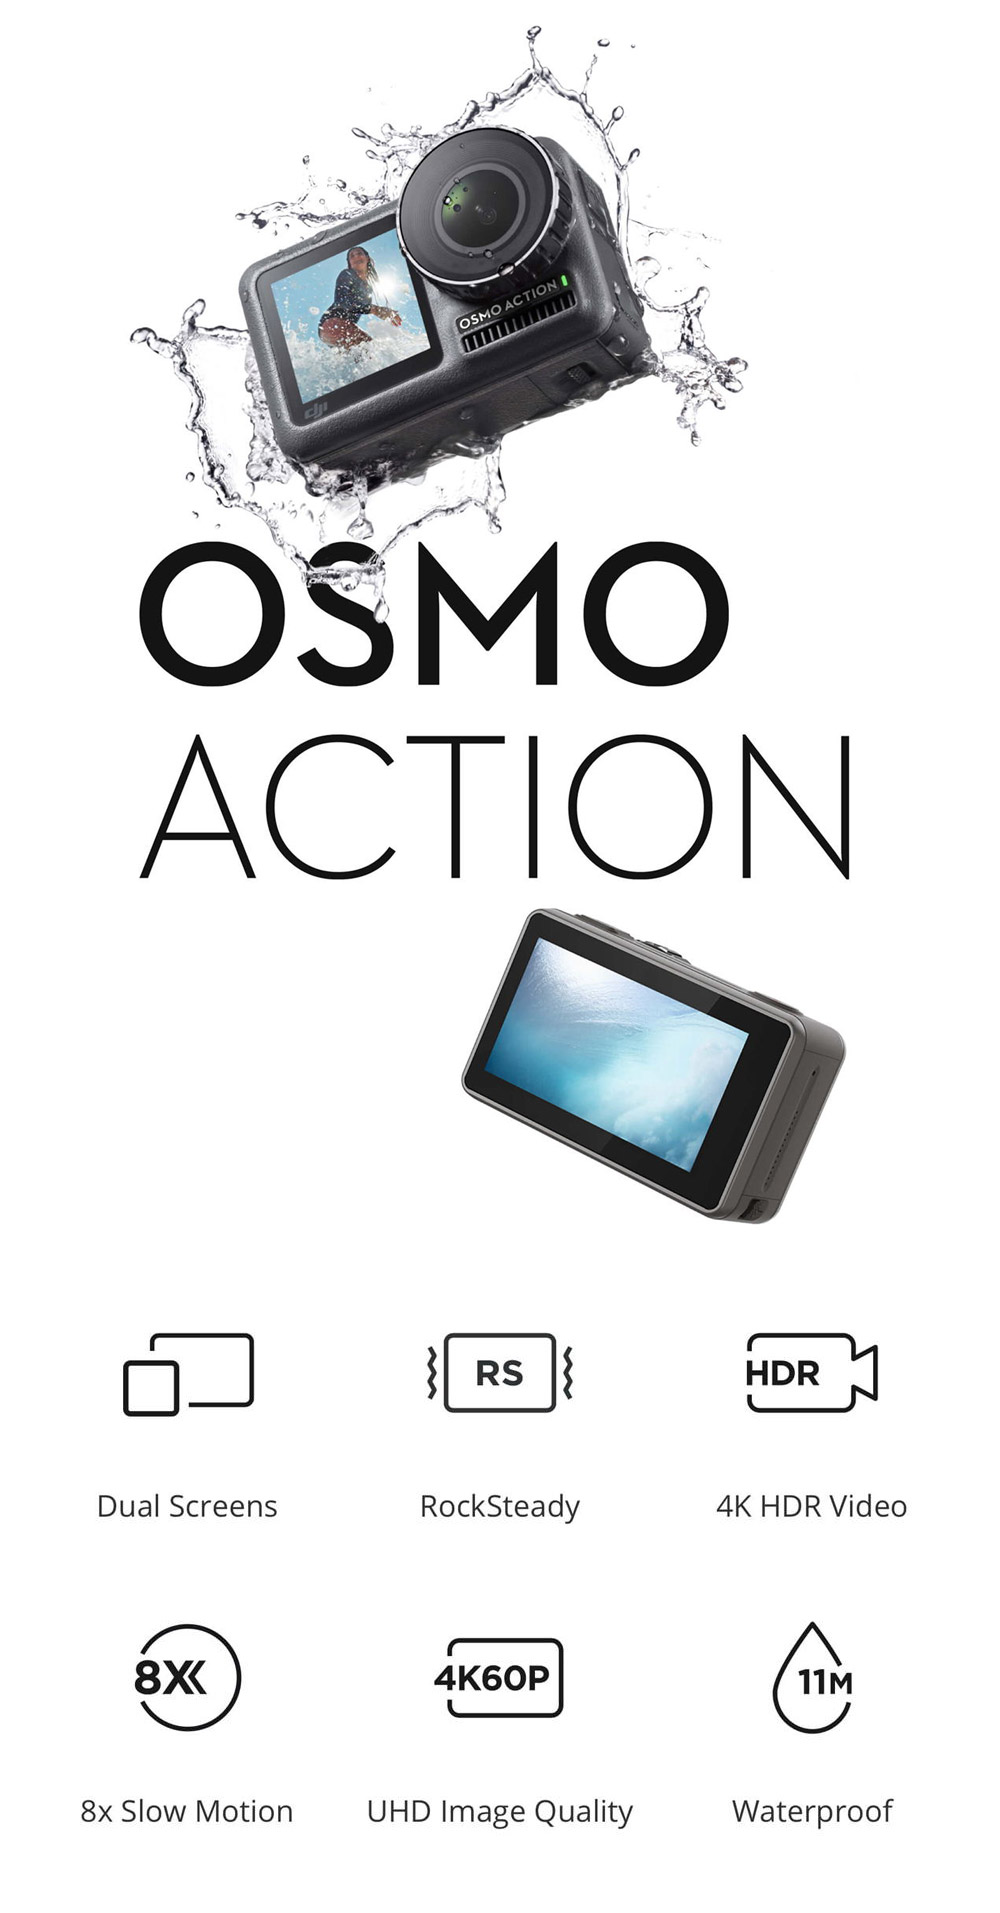 buy dji osmo action waterproof action camera